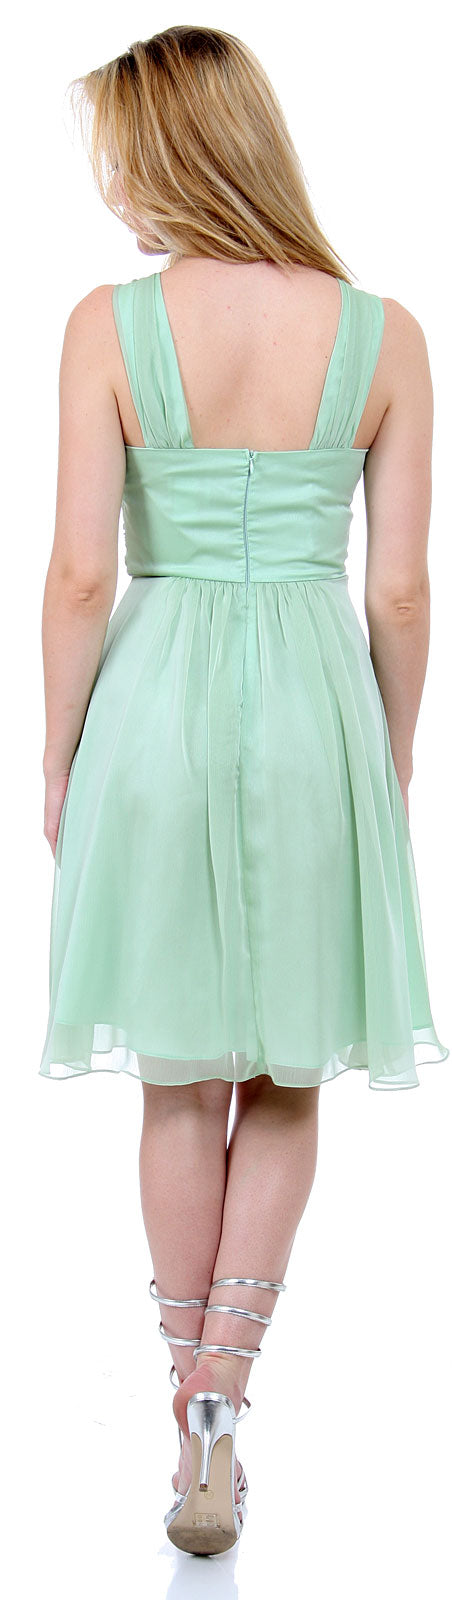 Back image of Empire Cut Shirred Knee Length Bridesmaid Party Dress